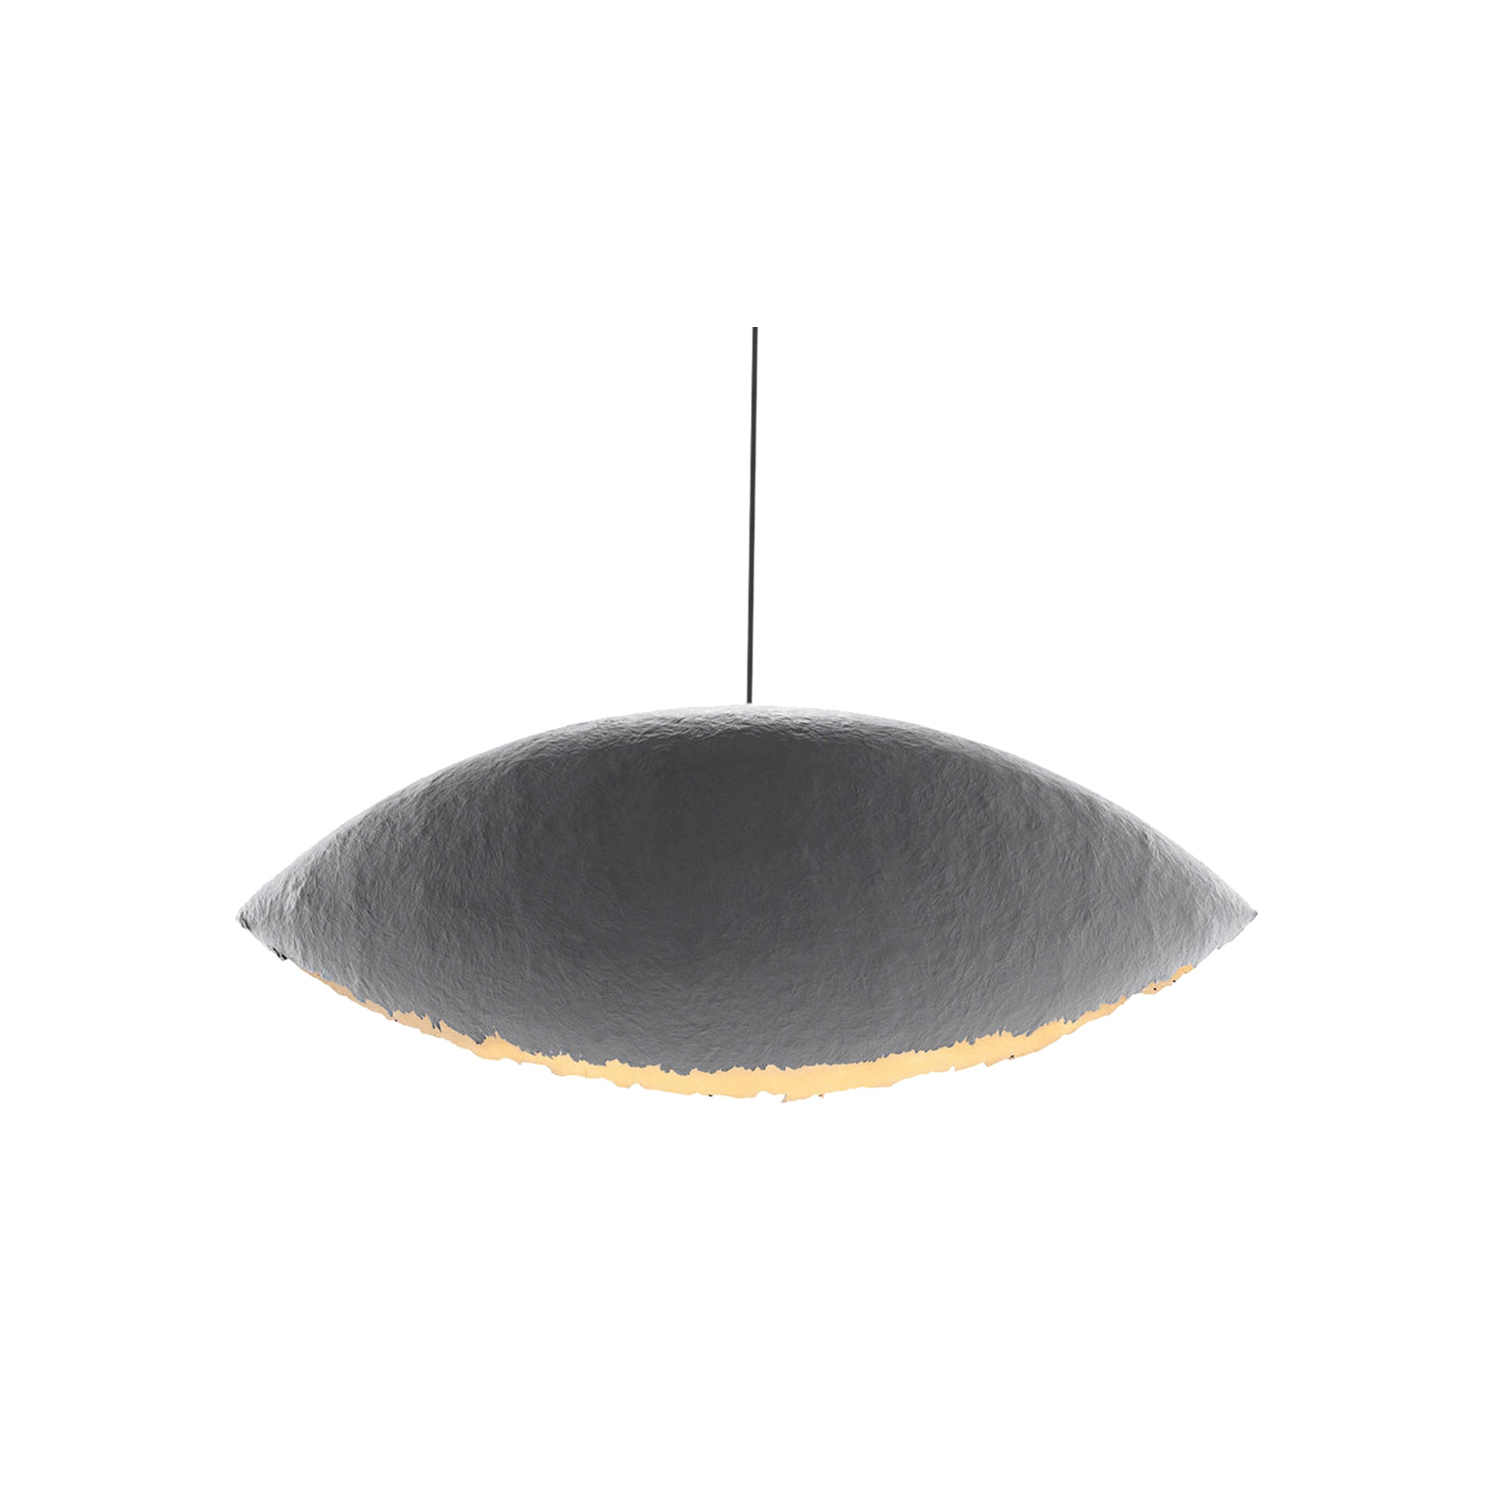 PostKrisi 50 / 51 / 52 Pendant Lamp - With PostKrisi Enzo Catellani began working and moulding fibreglass. This material fascinated him due to its incredible versatility and strength, but above all for the shadows it casts when it interacts with light. | Matter of Stuff